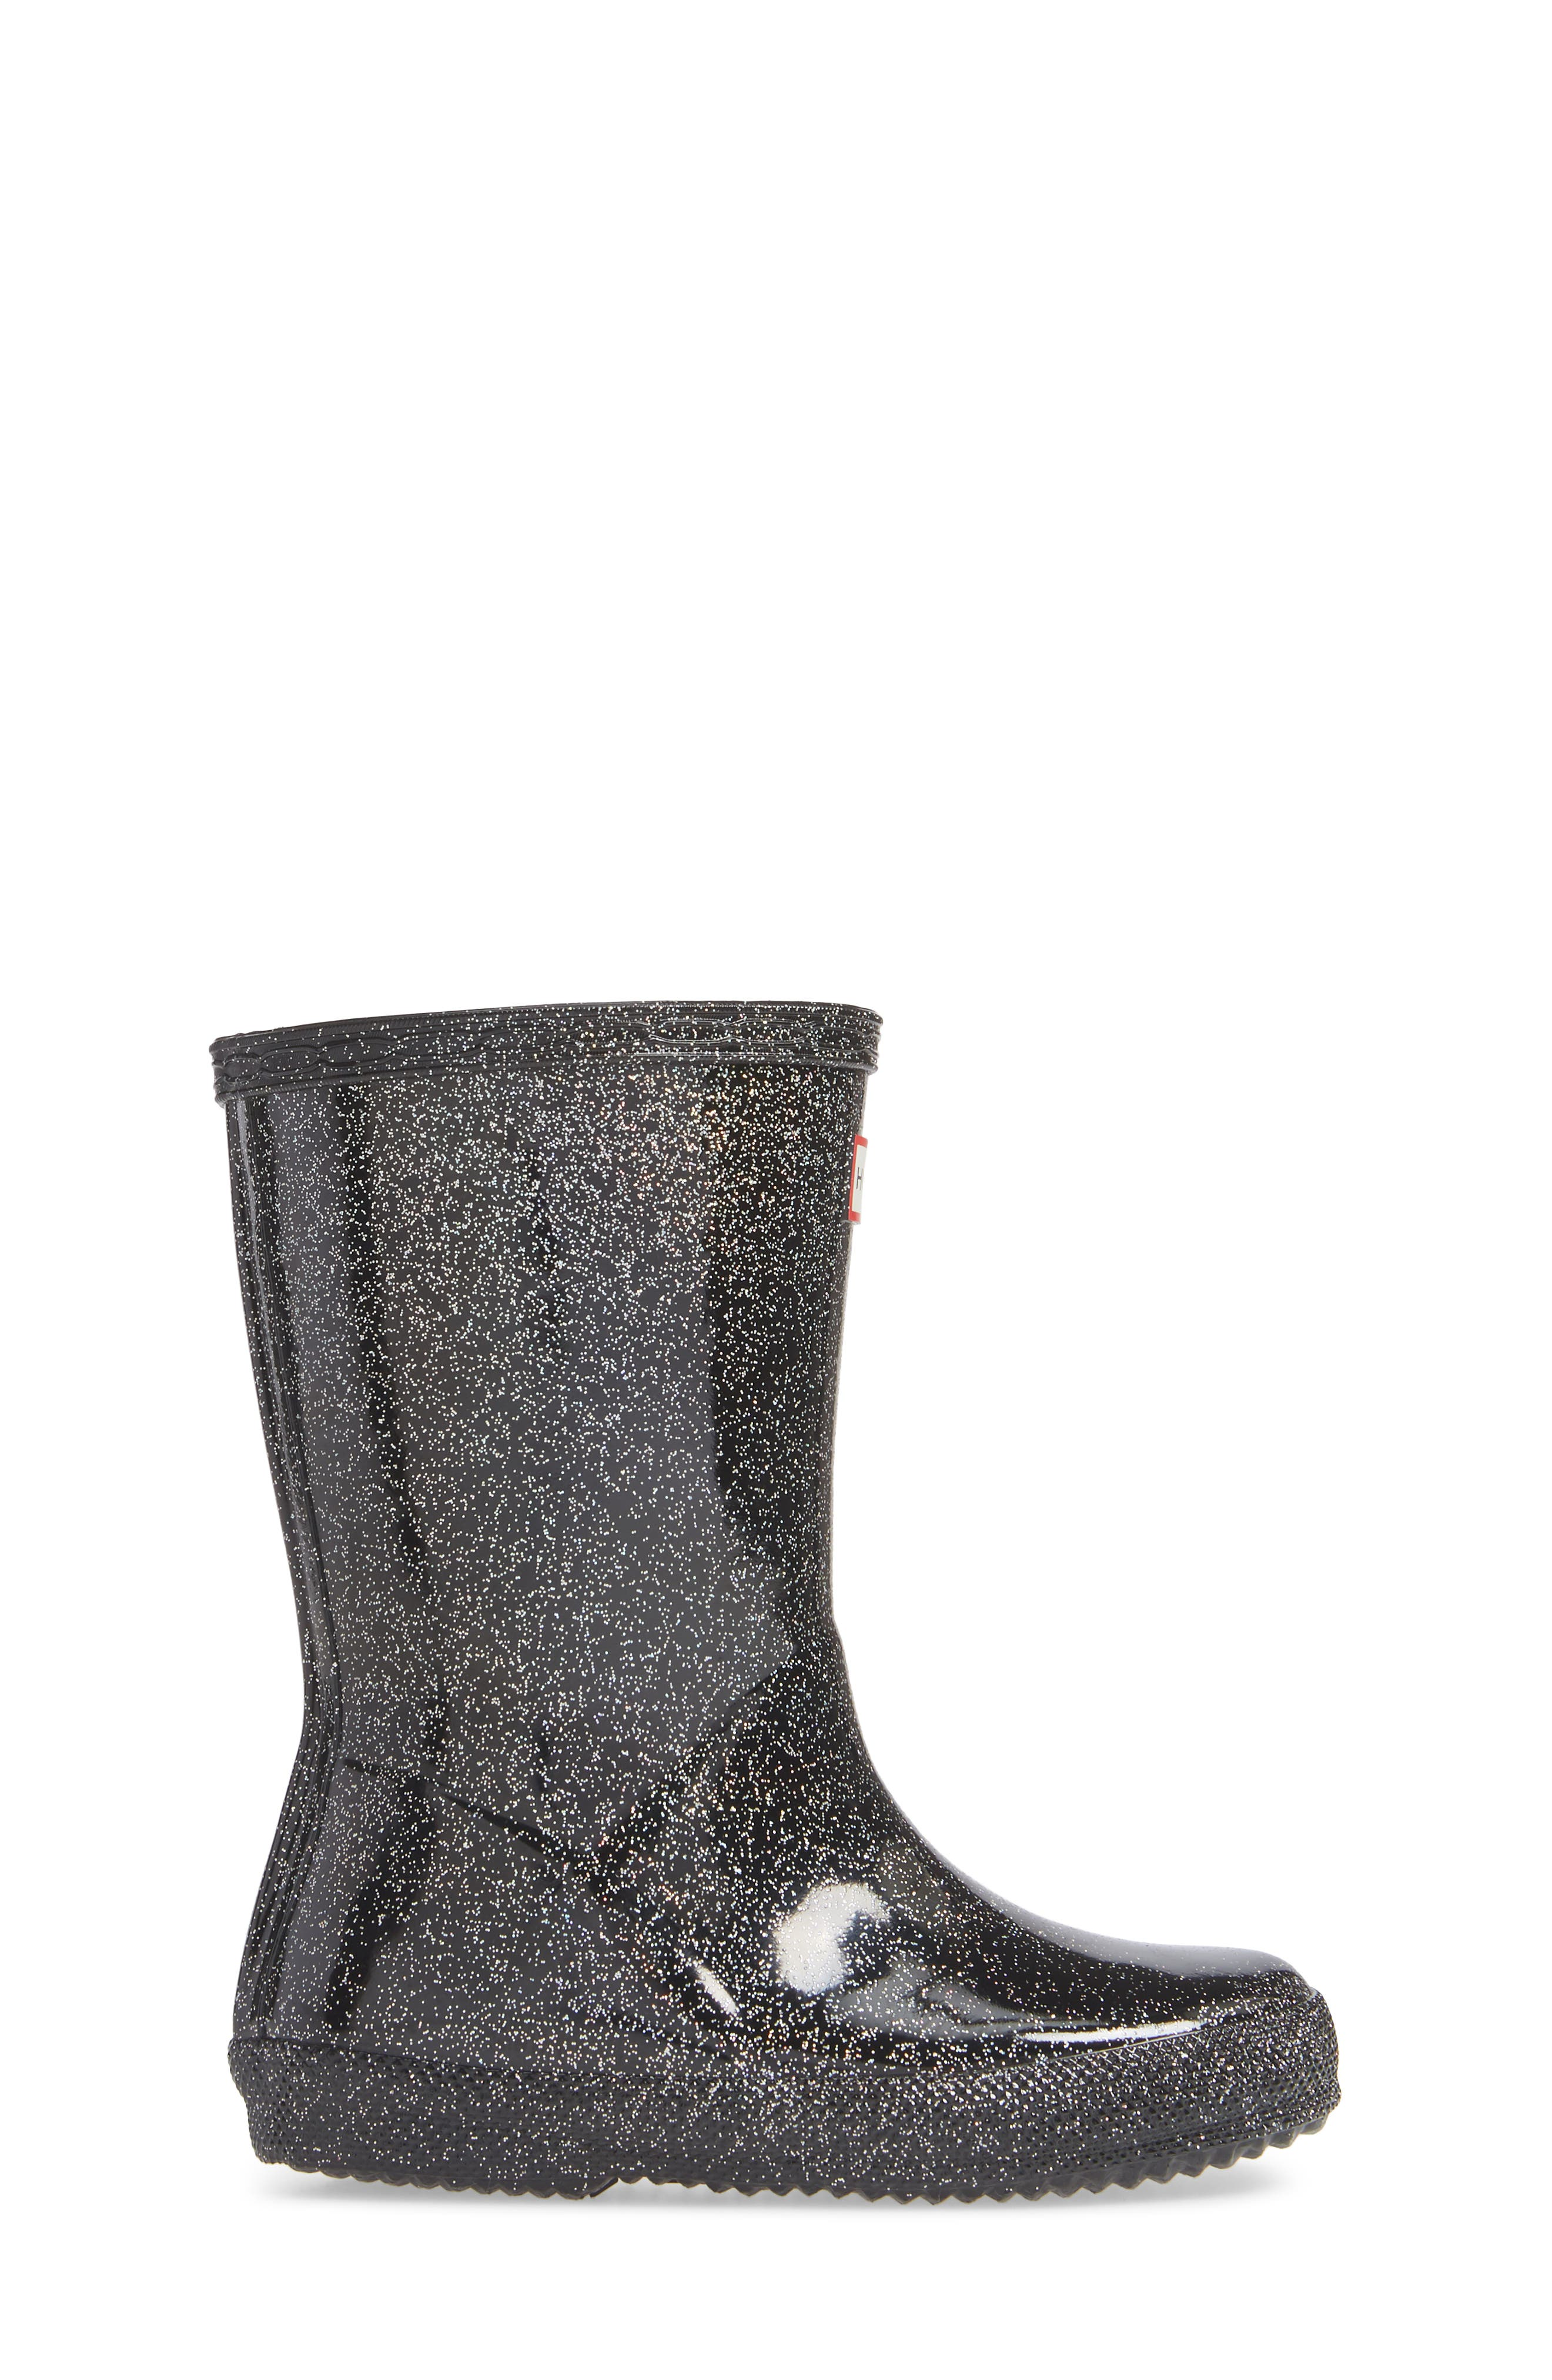 HUNTER,                             Kids First Classic Starcloud Glitter Rain Boot,                             Alternate thumbnail 3, color,                             BLACK MULTI